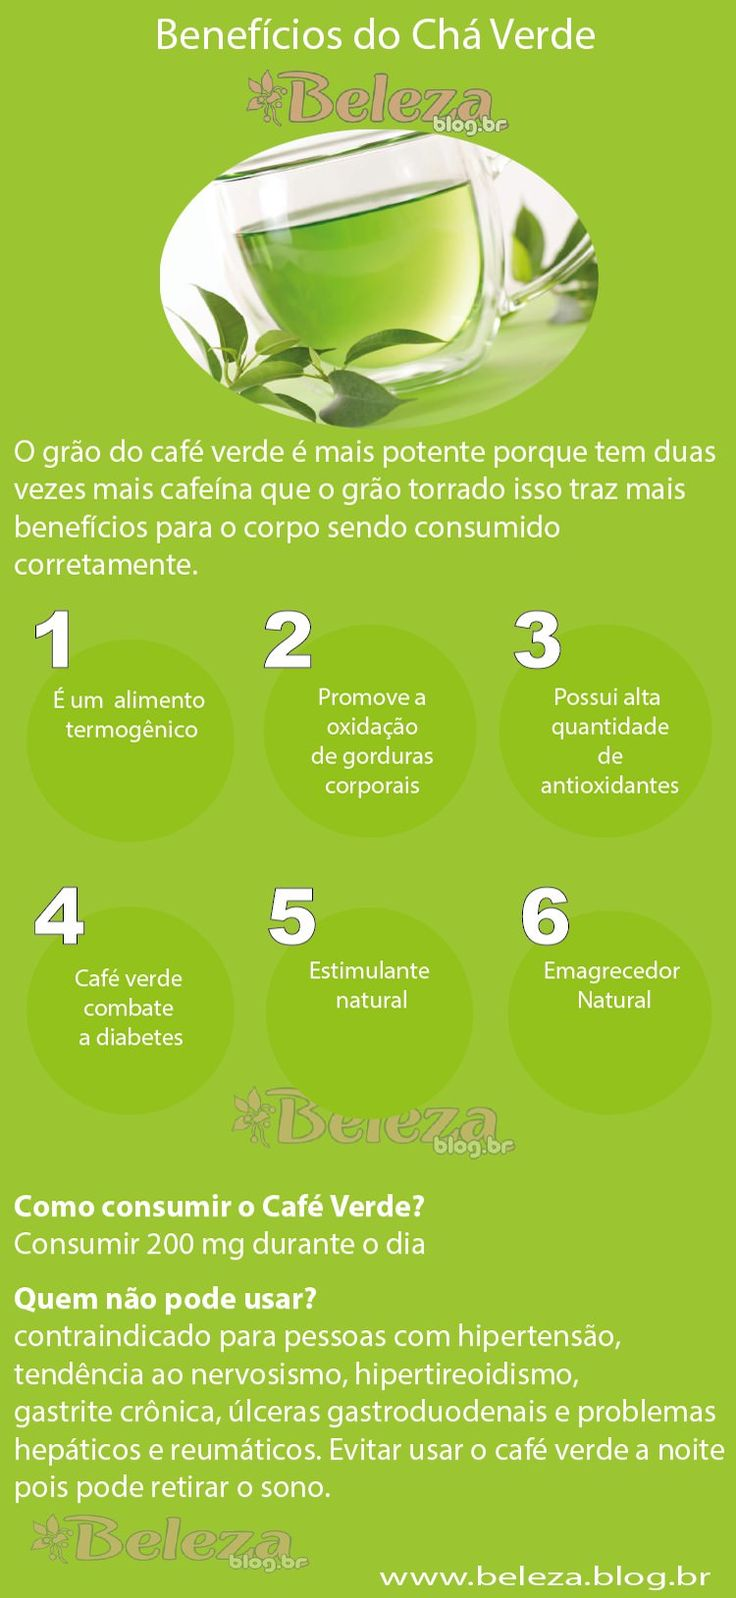 Beneficios do Chá Verde